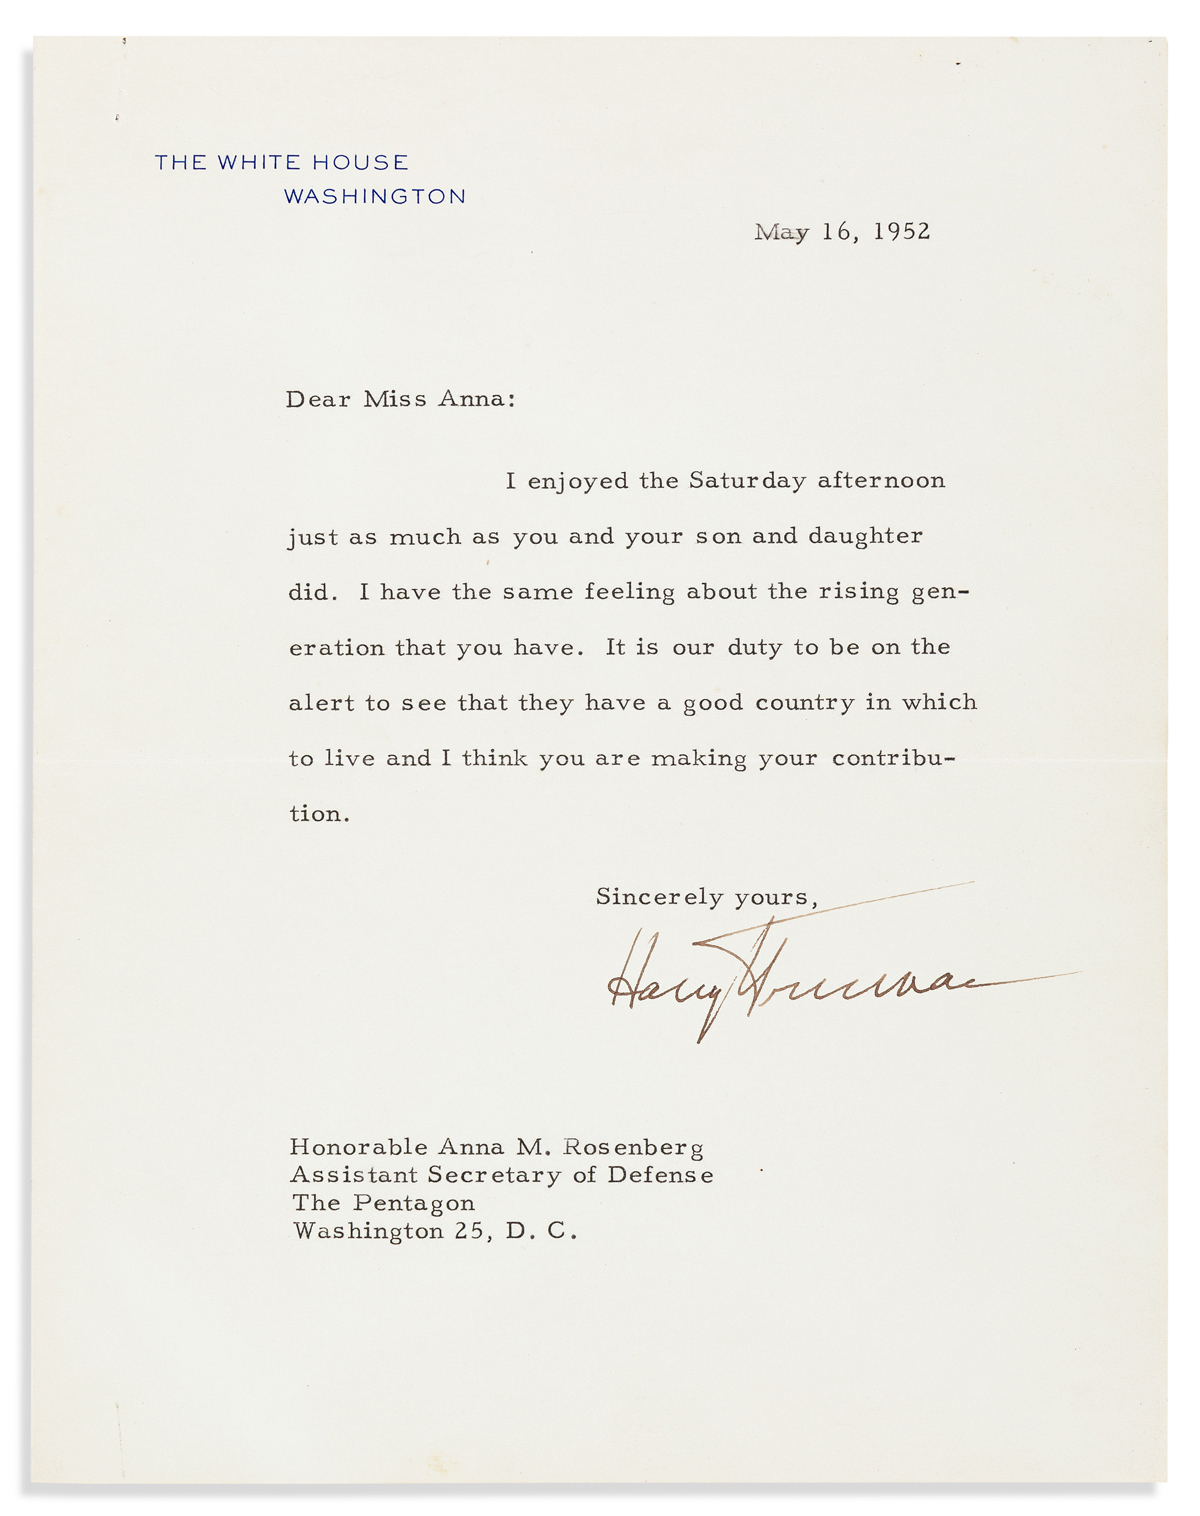 TRUMAN, HARRY S. Two items, each Signed, as President, to Assistant Secretary of Defense Anna M. Rosenberg: Typed Letter * Inscribed Ph